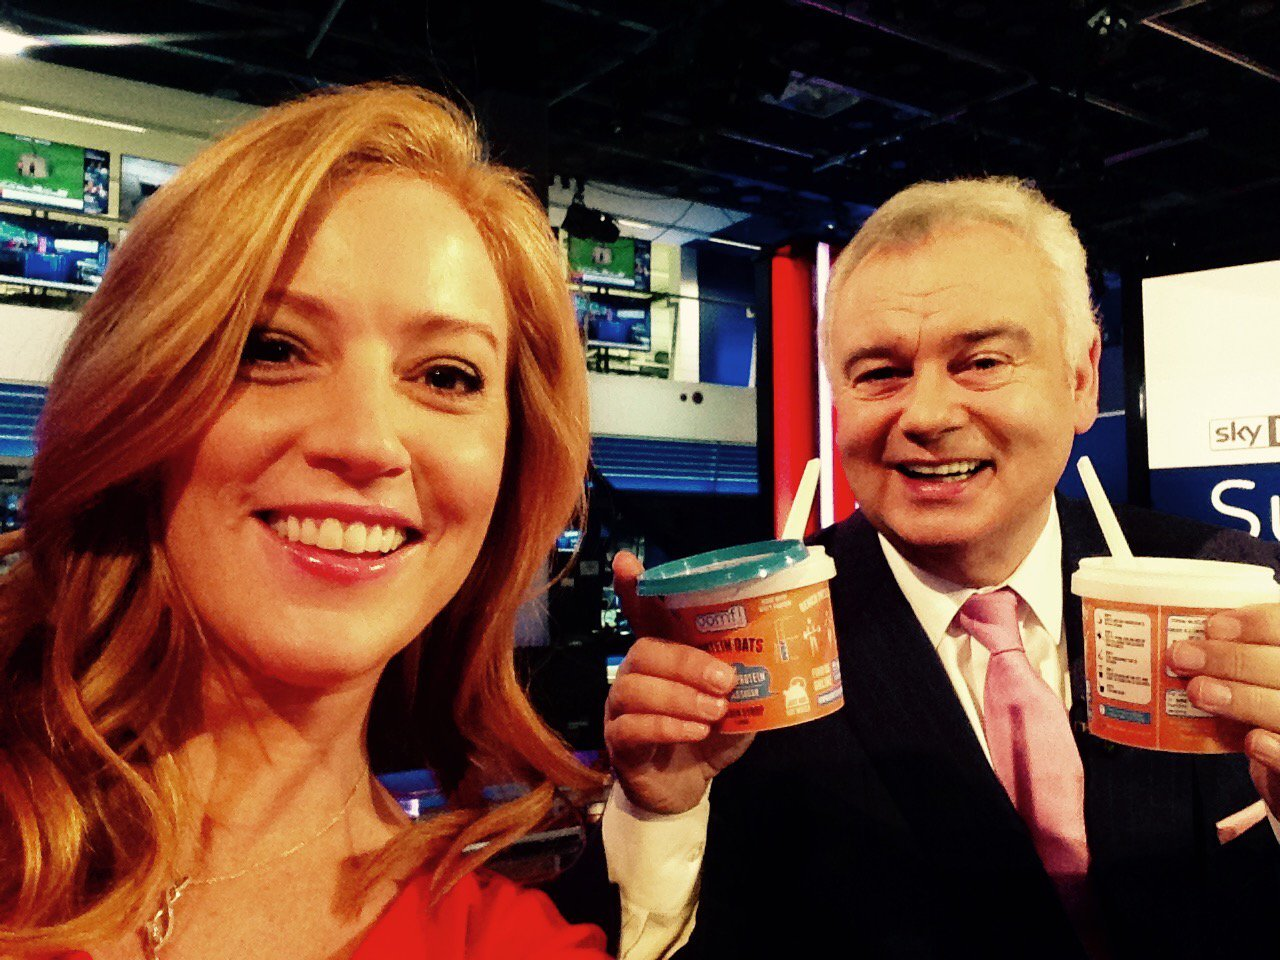 RT @skysarahjane: This morning I made @EamonnHolmes breakfast...well i put water in a porridge pot!  He was delighted... #thickorrunny http…